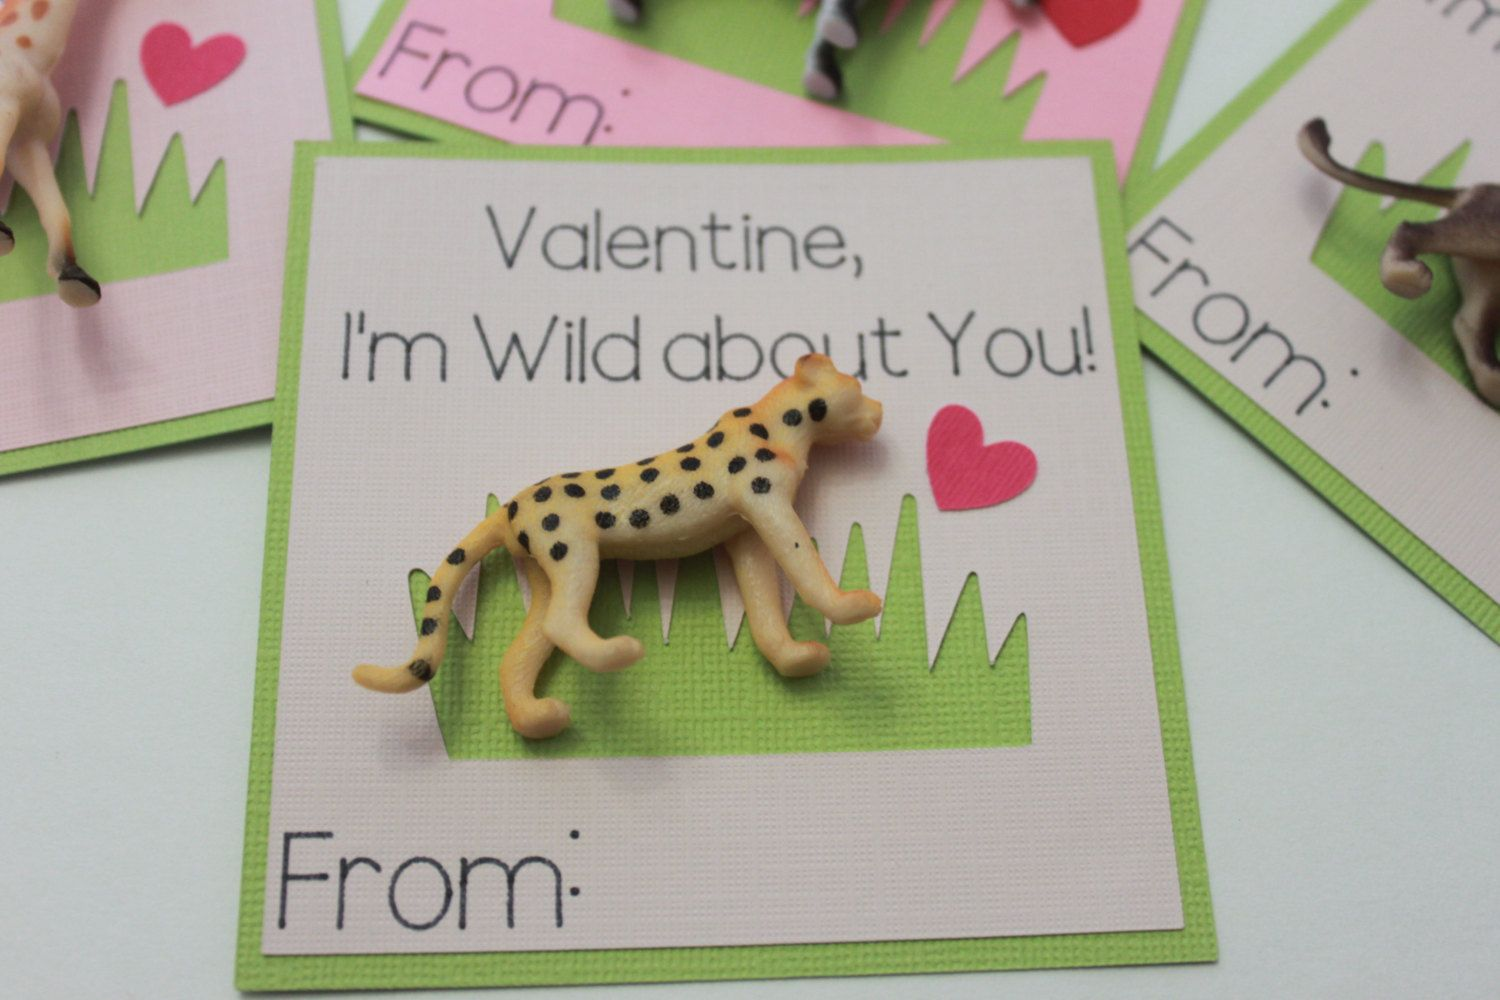 I am Wild About You! Valentines Day Cards- Set of 20  Each card features a removable plastic safari animal. The words are drawn by a die cut machine with a permanent black marker. These cards are my original design. Measure 3.75 inches tall and 3.75 inches wide. Includes 20 cards, 20 safari animals, and 20 removable glue dots. Simply adhere the eraser to the cards when your package arrives.  Need a different amount? Please check with me for availability. Questions? Please ask